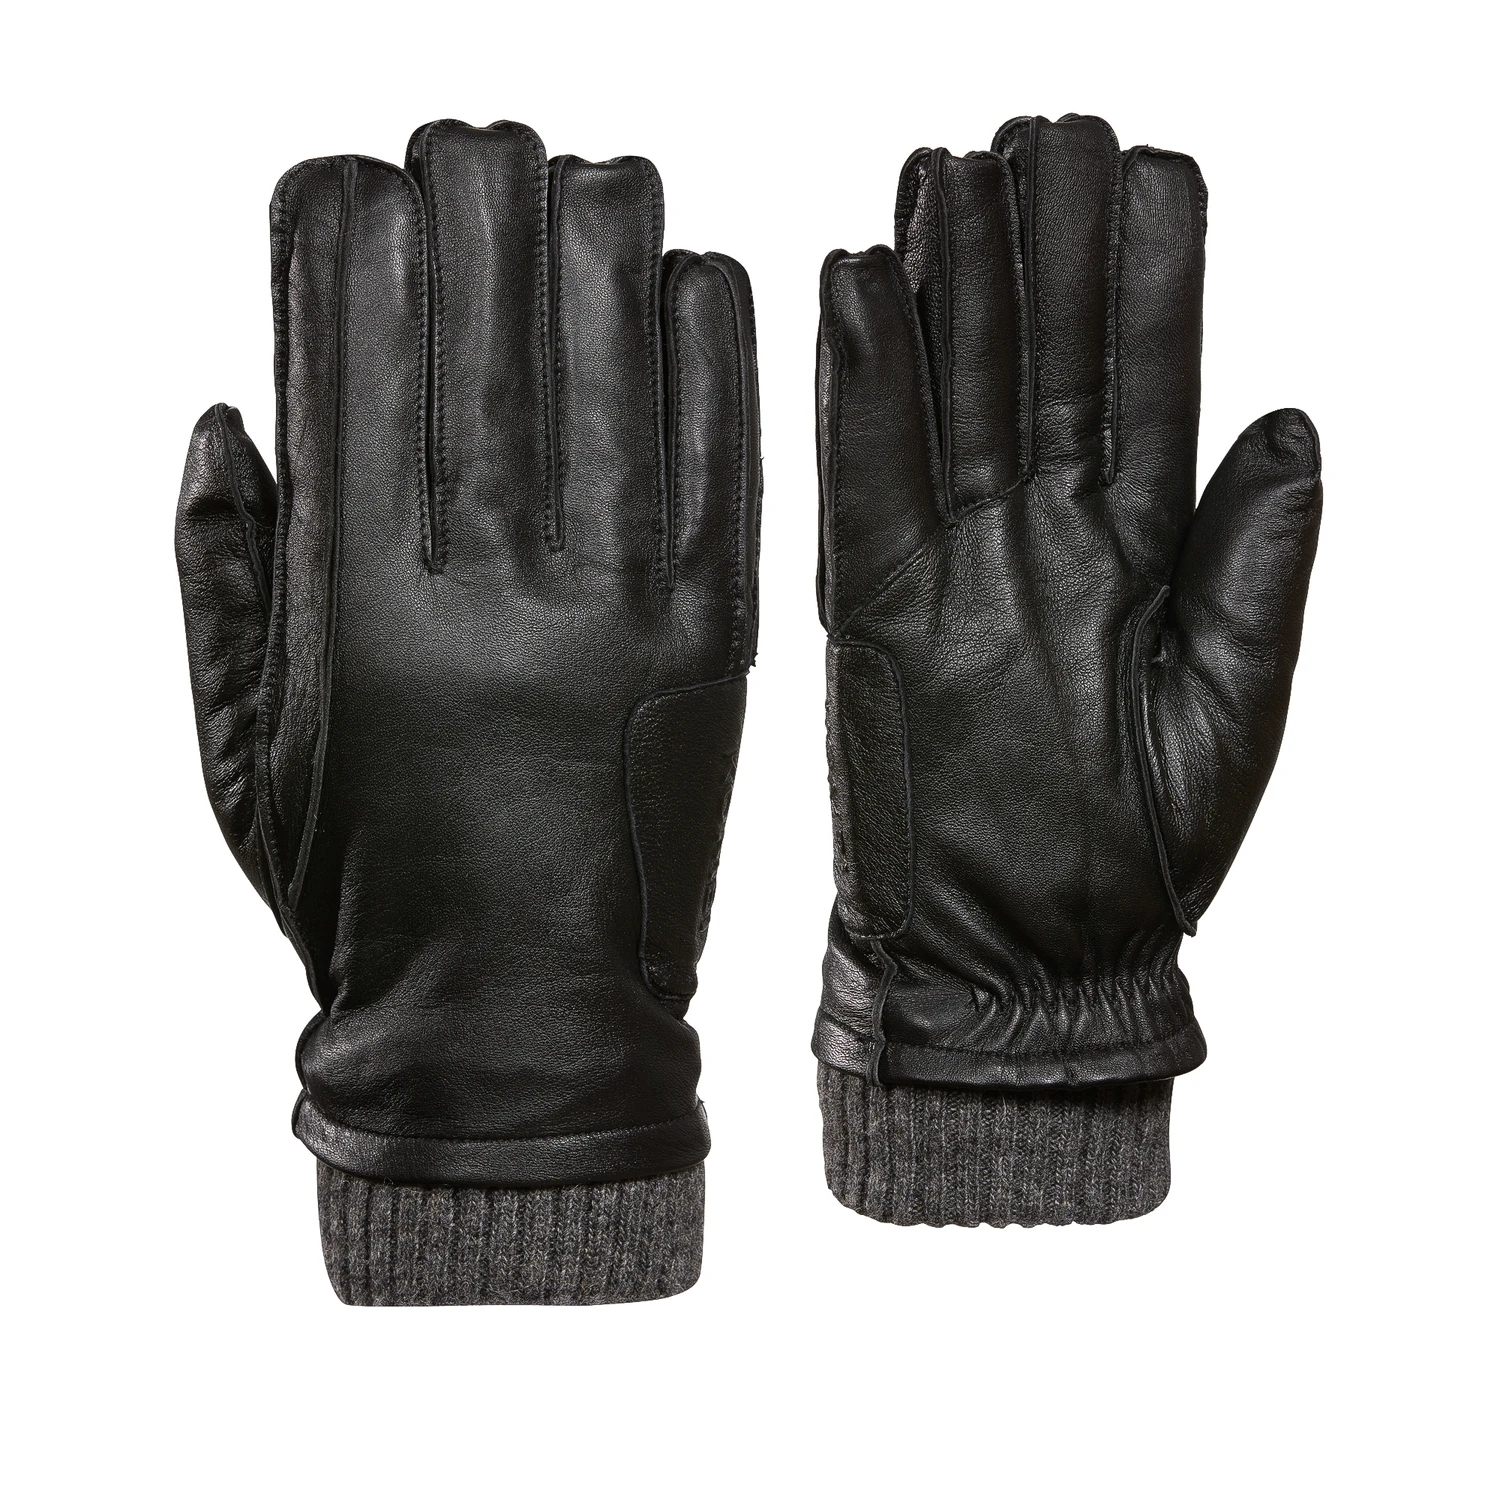 Kombi Charmer Glove - Men's